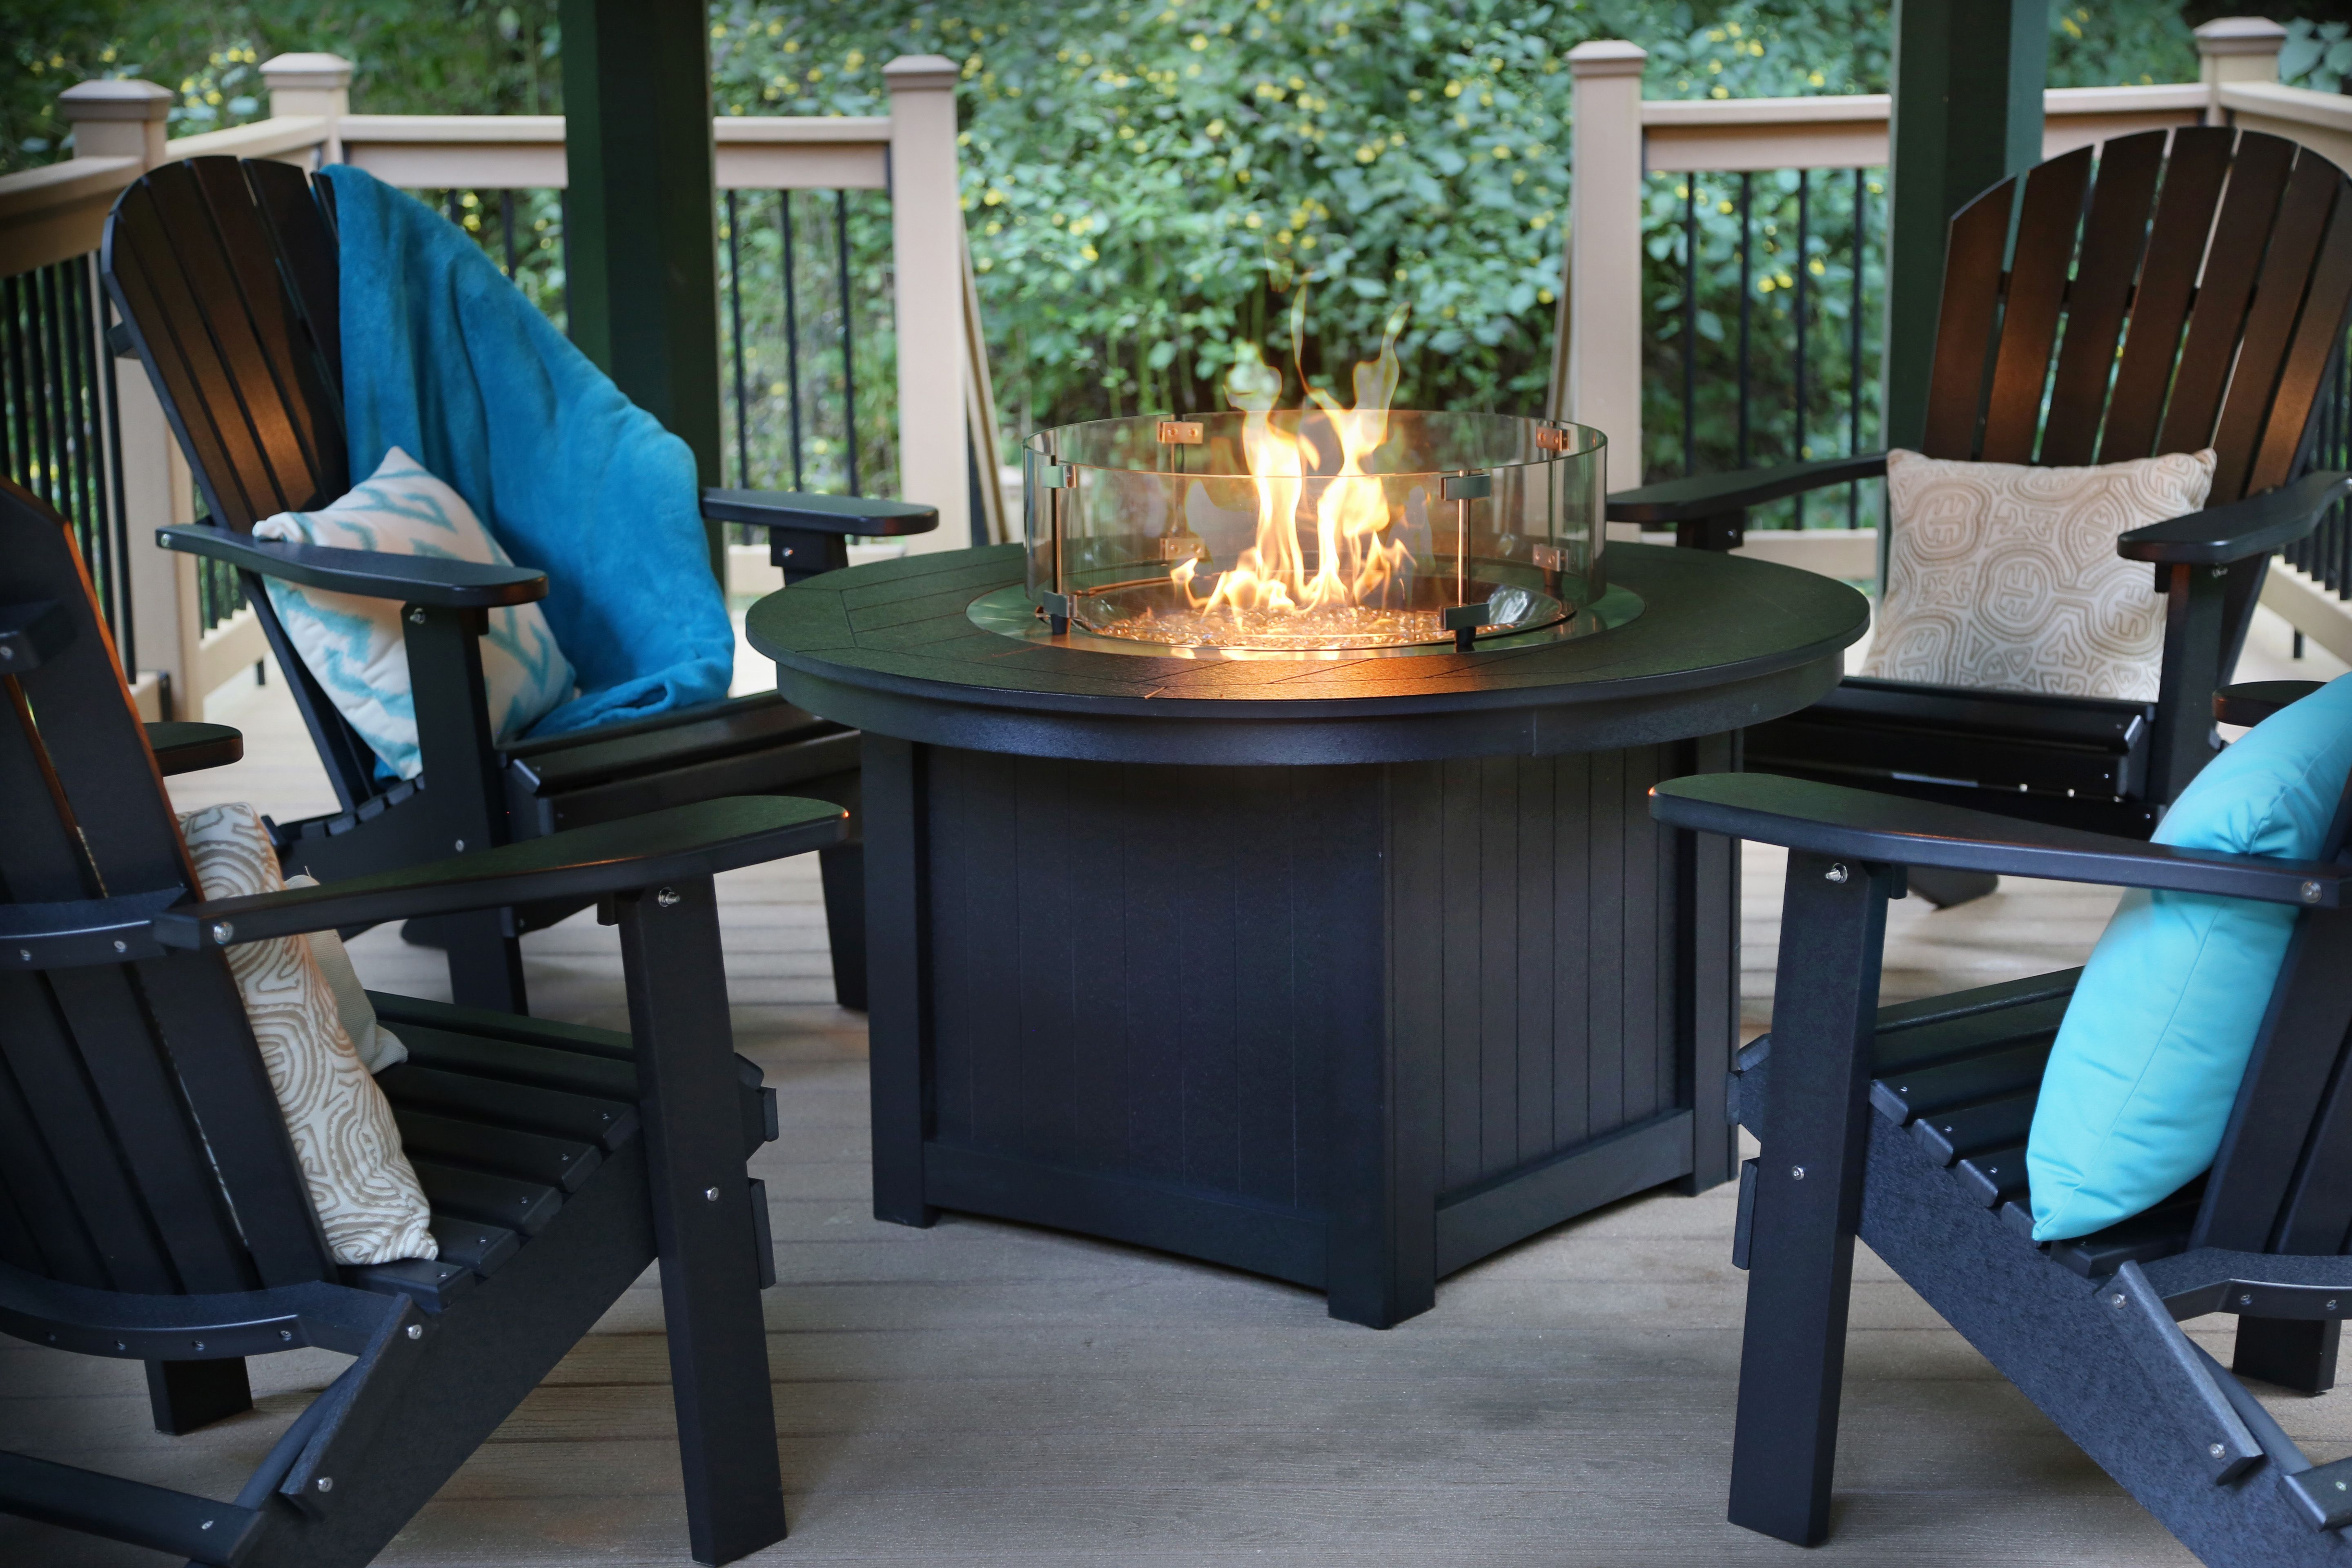 17 Best 1000 images about Outdoor Furniture on Pinterest Gardens